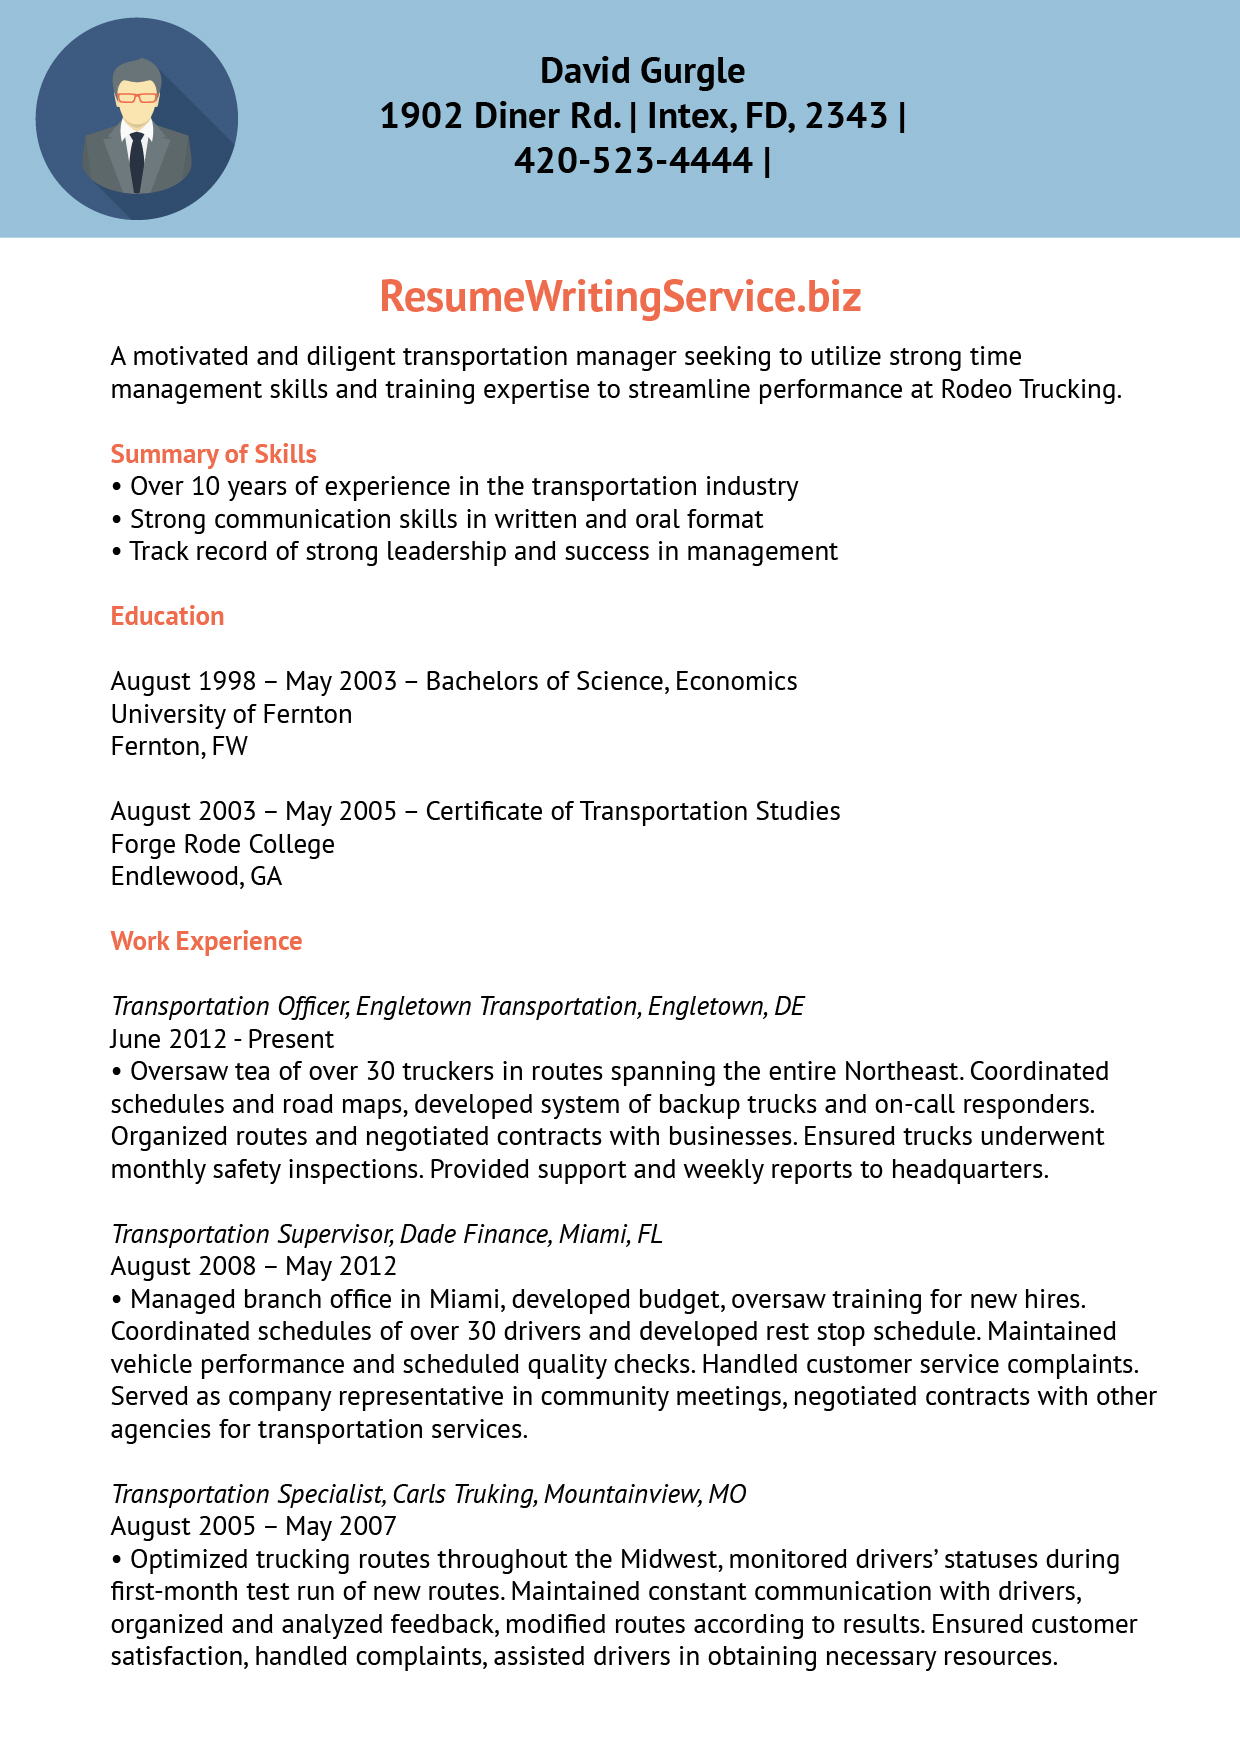 professional resume writing melbourne